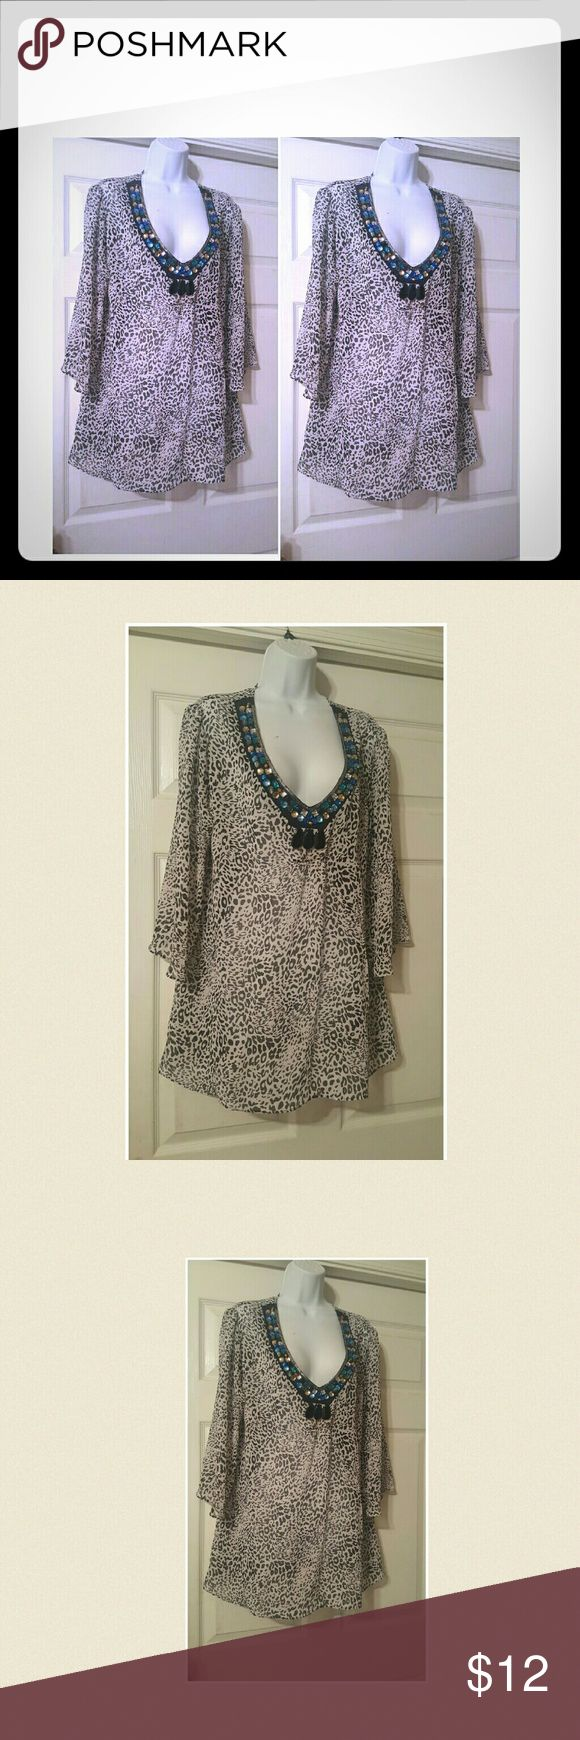 Black& white leopard print tunic top Black and white leopard print tunic top with embellished vneckline and 3/4 length sleeves. Top is in excellent like new condition Tops Tunics